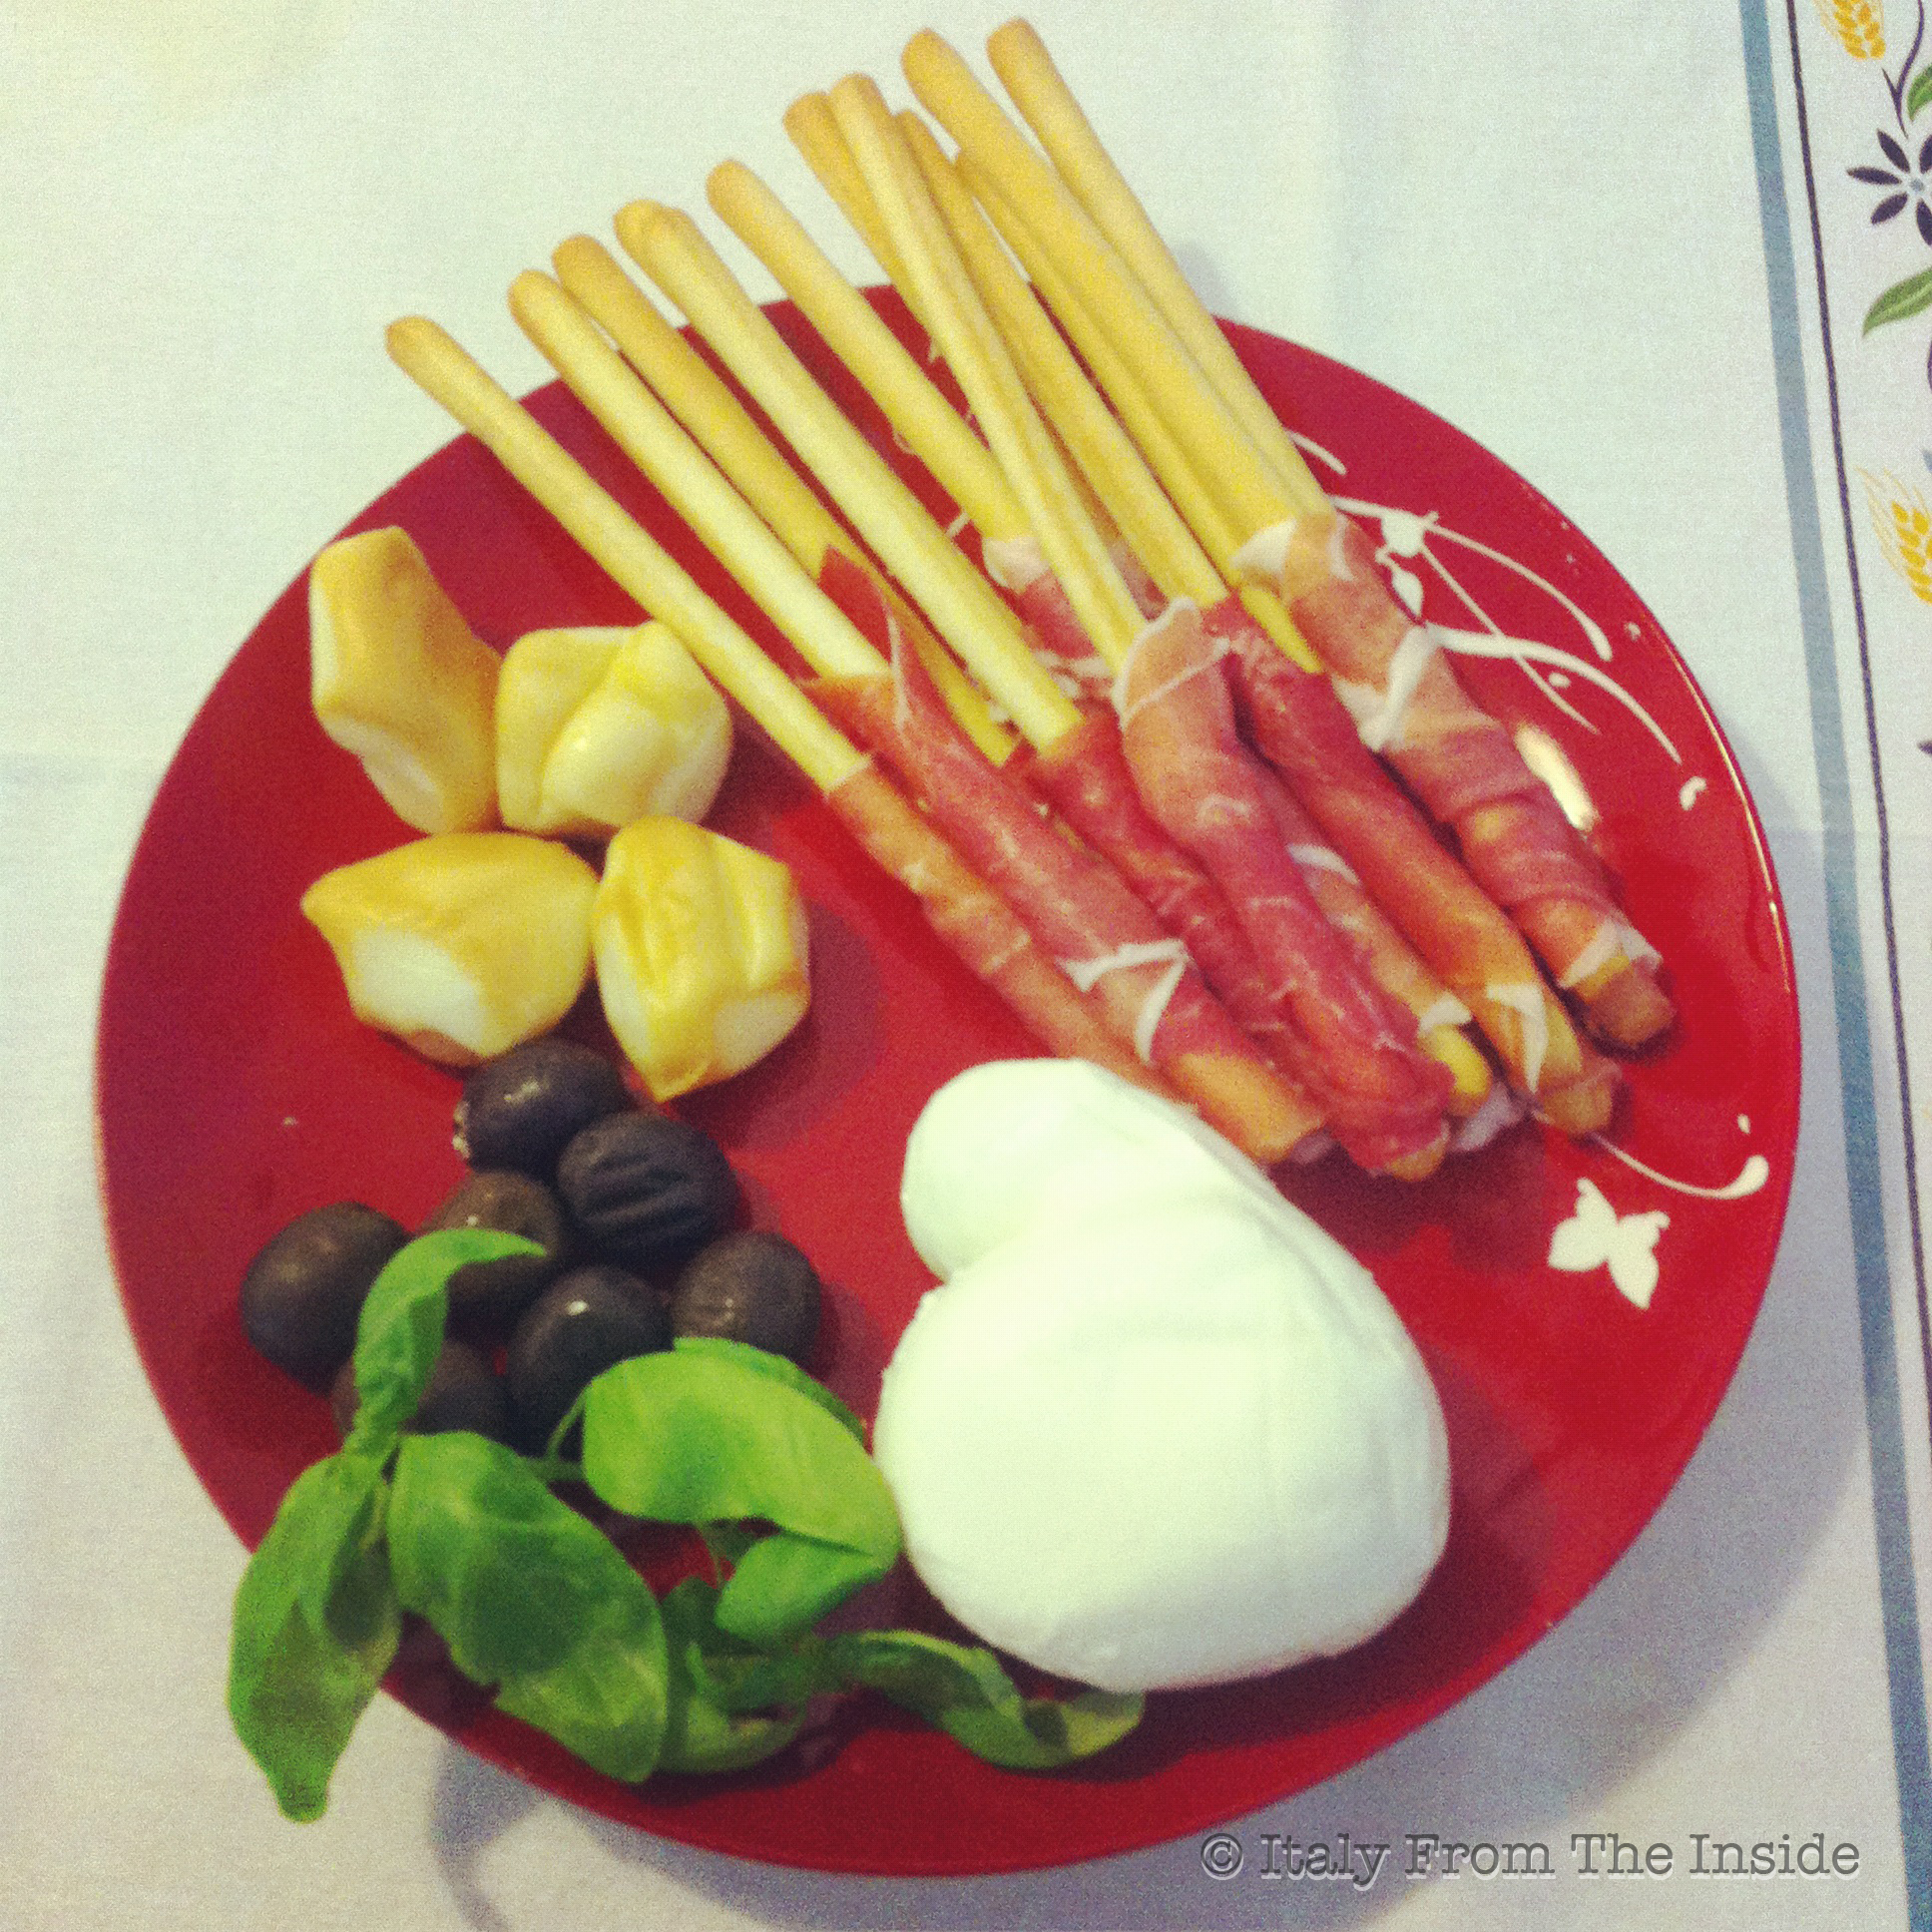 Antipasto prosciutto e mozzarella- Italy From The Inside